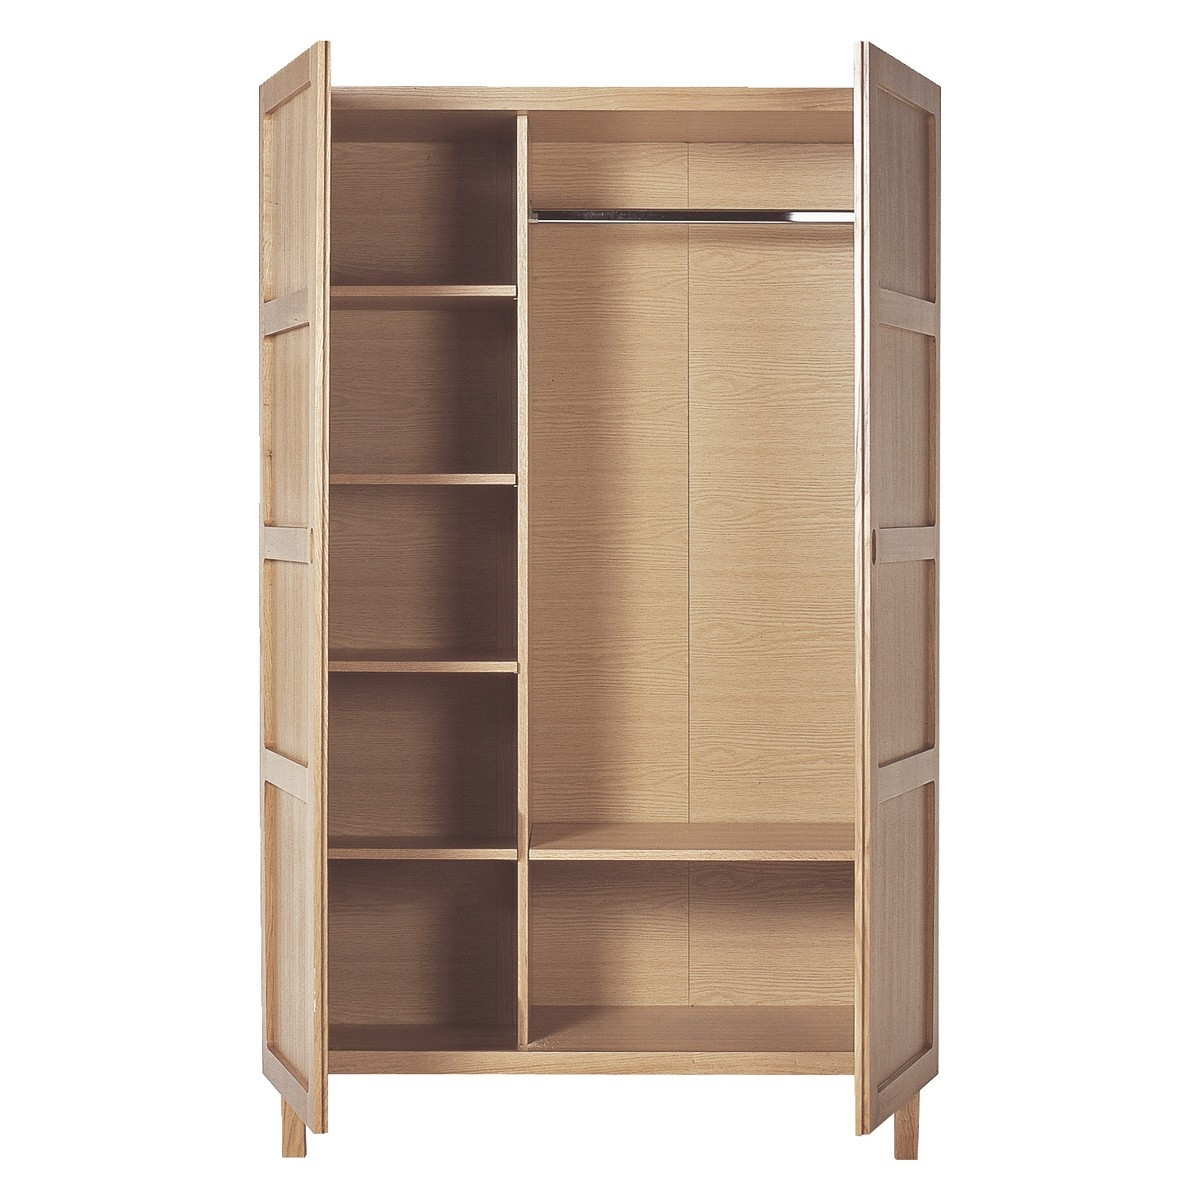 Radius Oak 2 Door Wardrobe Buy Now At Habitat Uk Regarding Wardrobes With Shelves And Drawers (View 14 of 15)